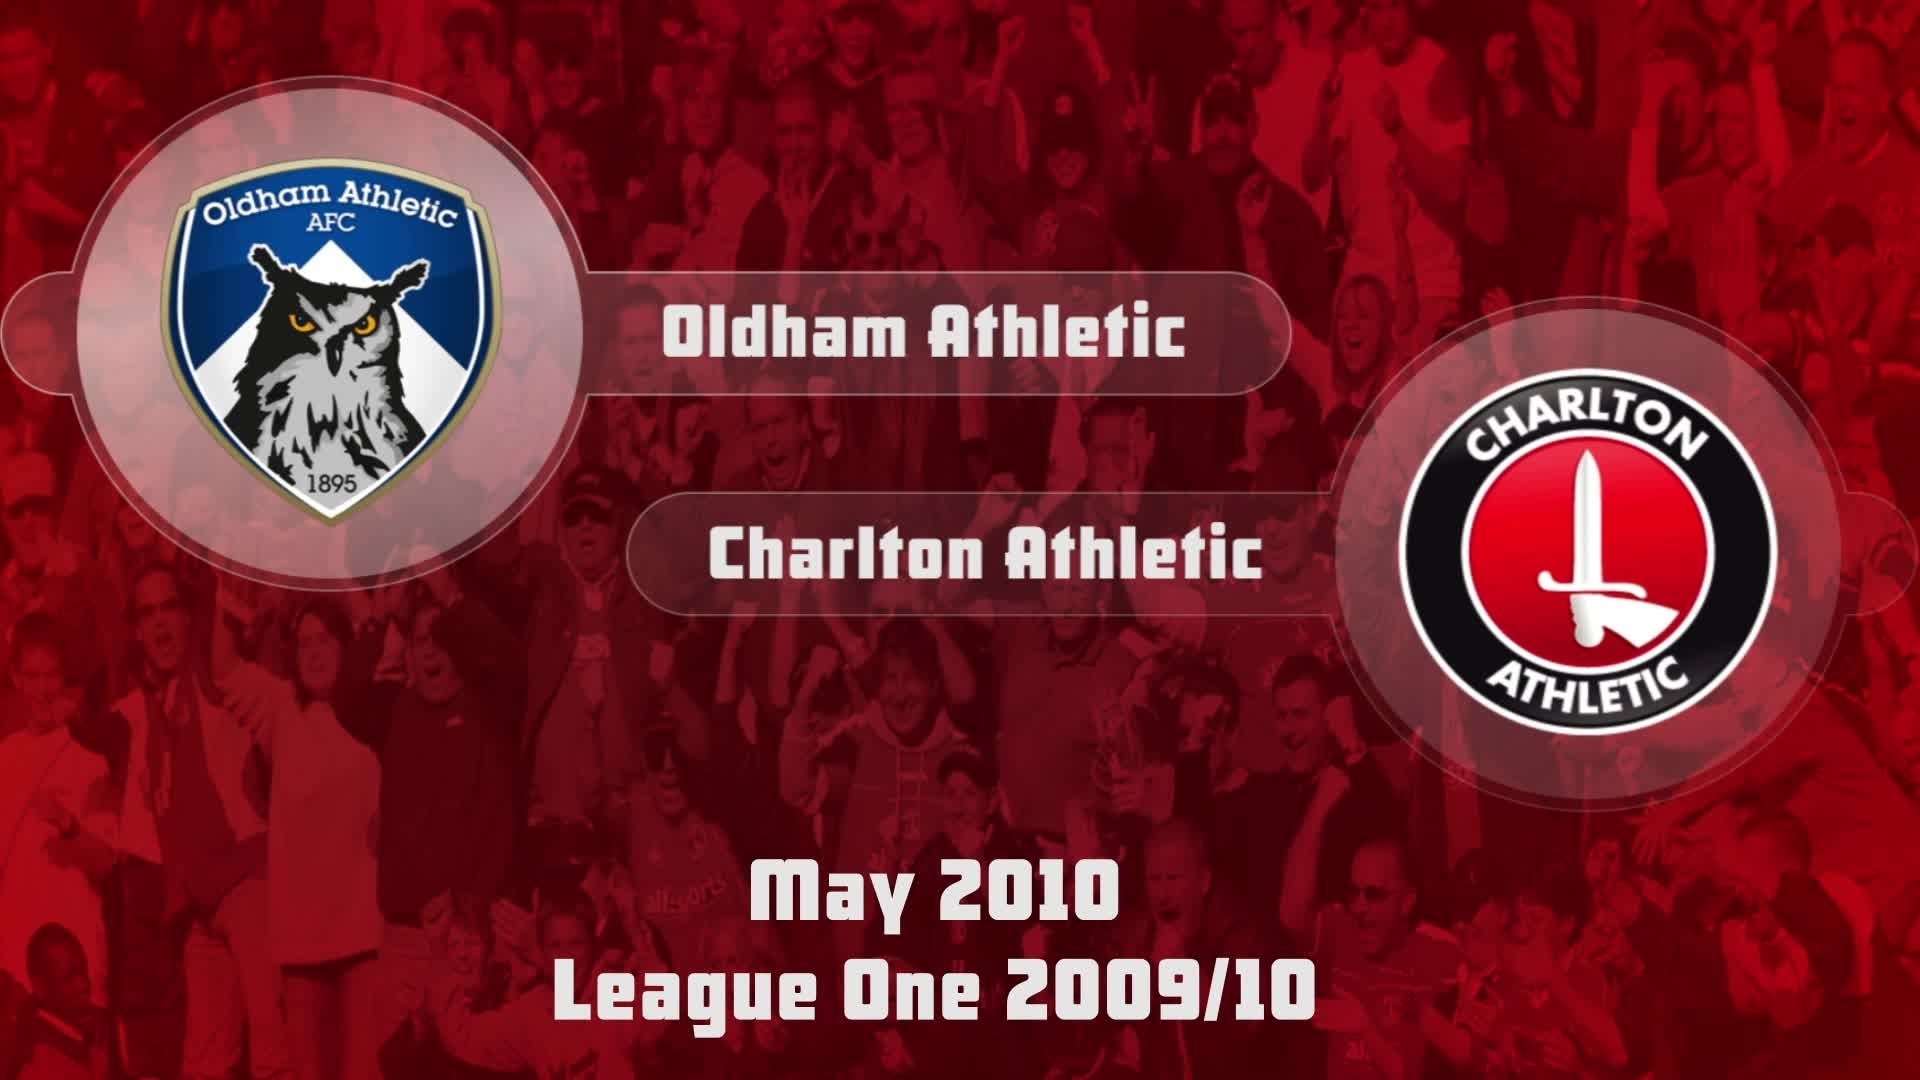 50 HIGHLIGHTS | Oldham 0 Charlton 2 (May 2010)